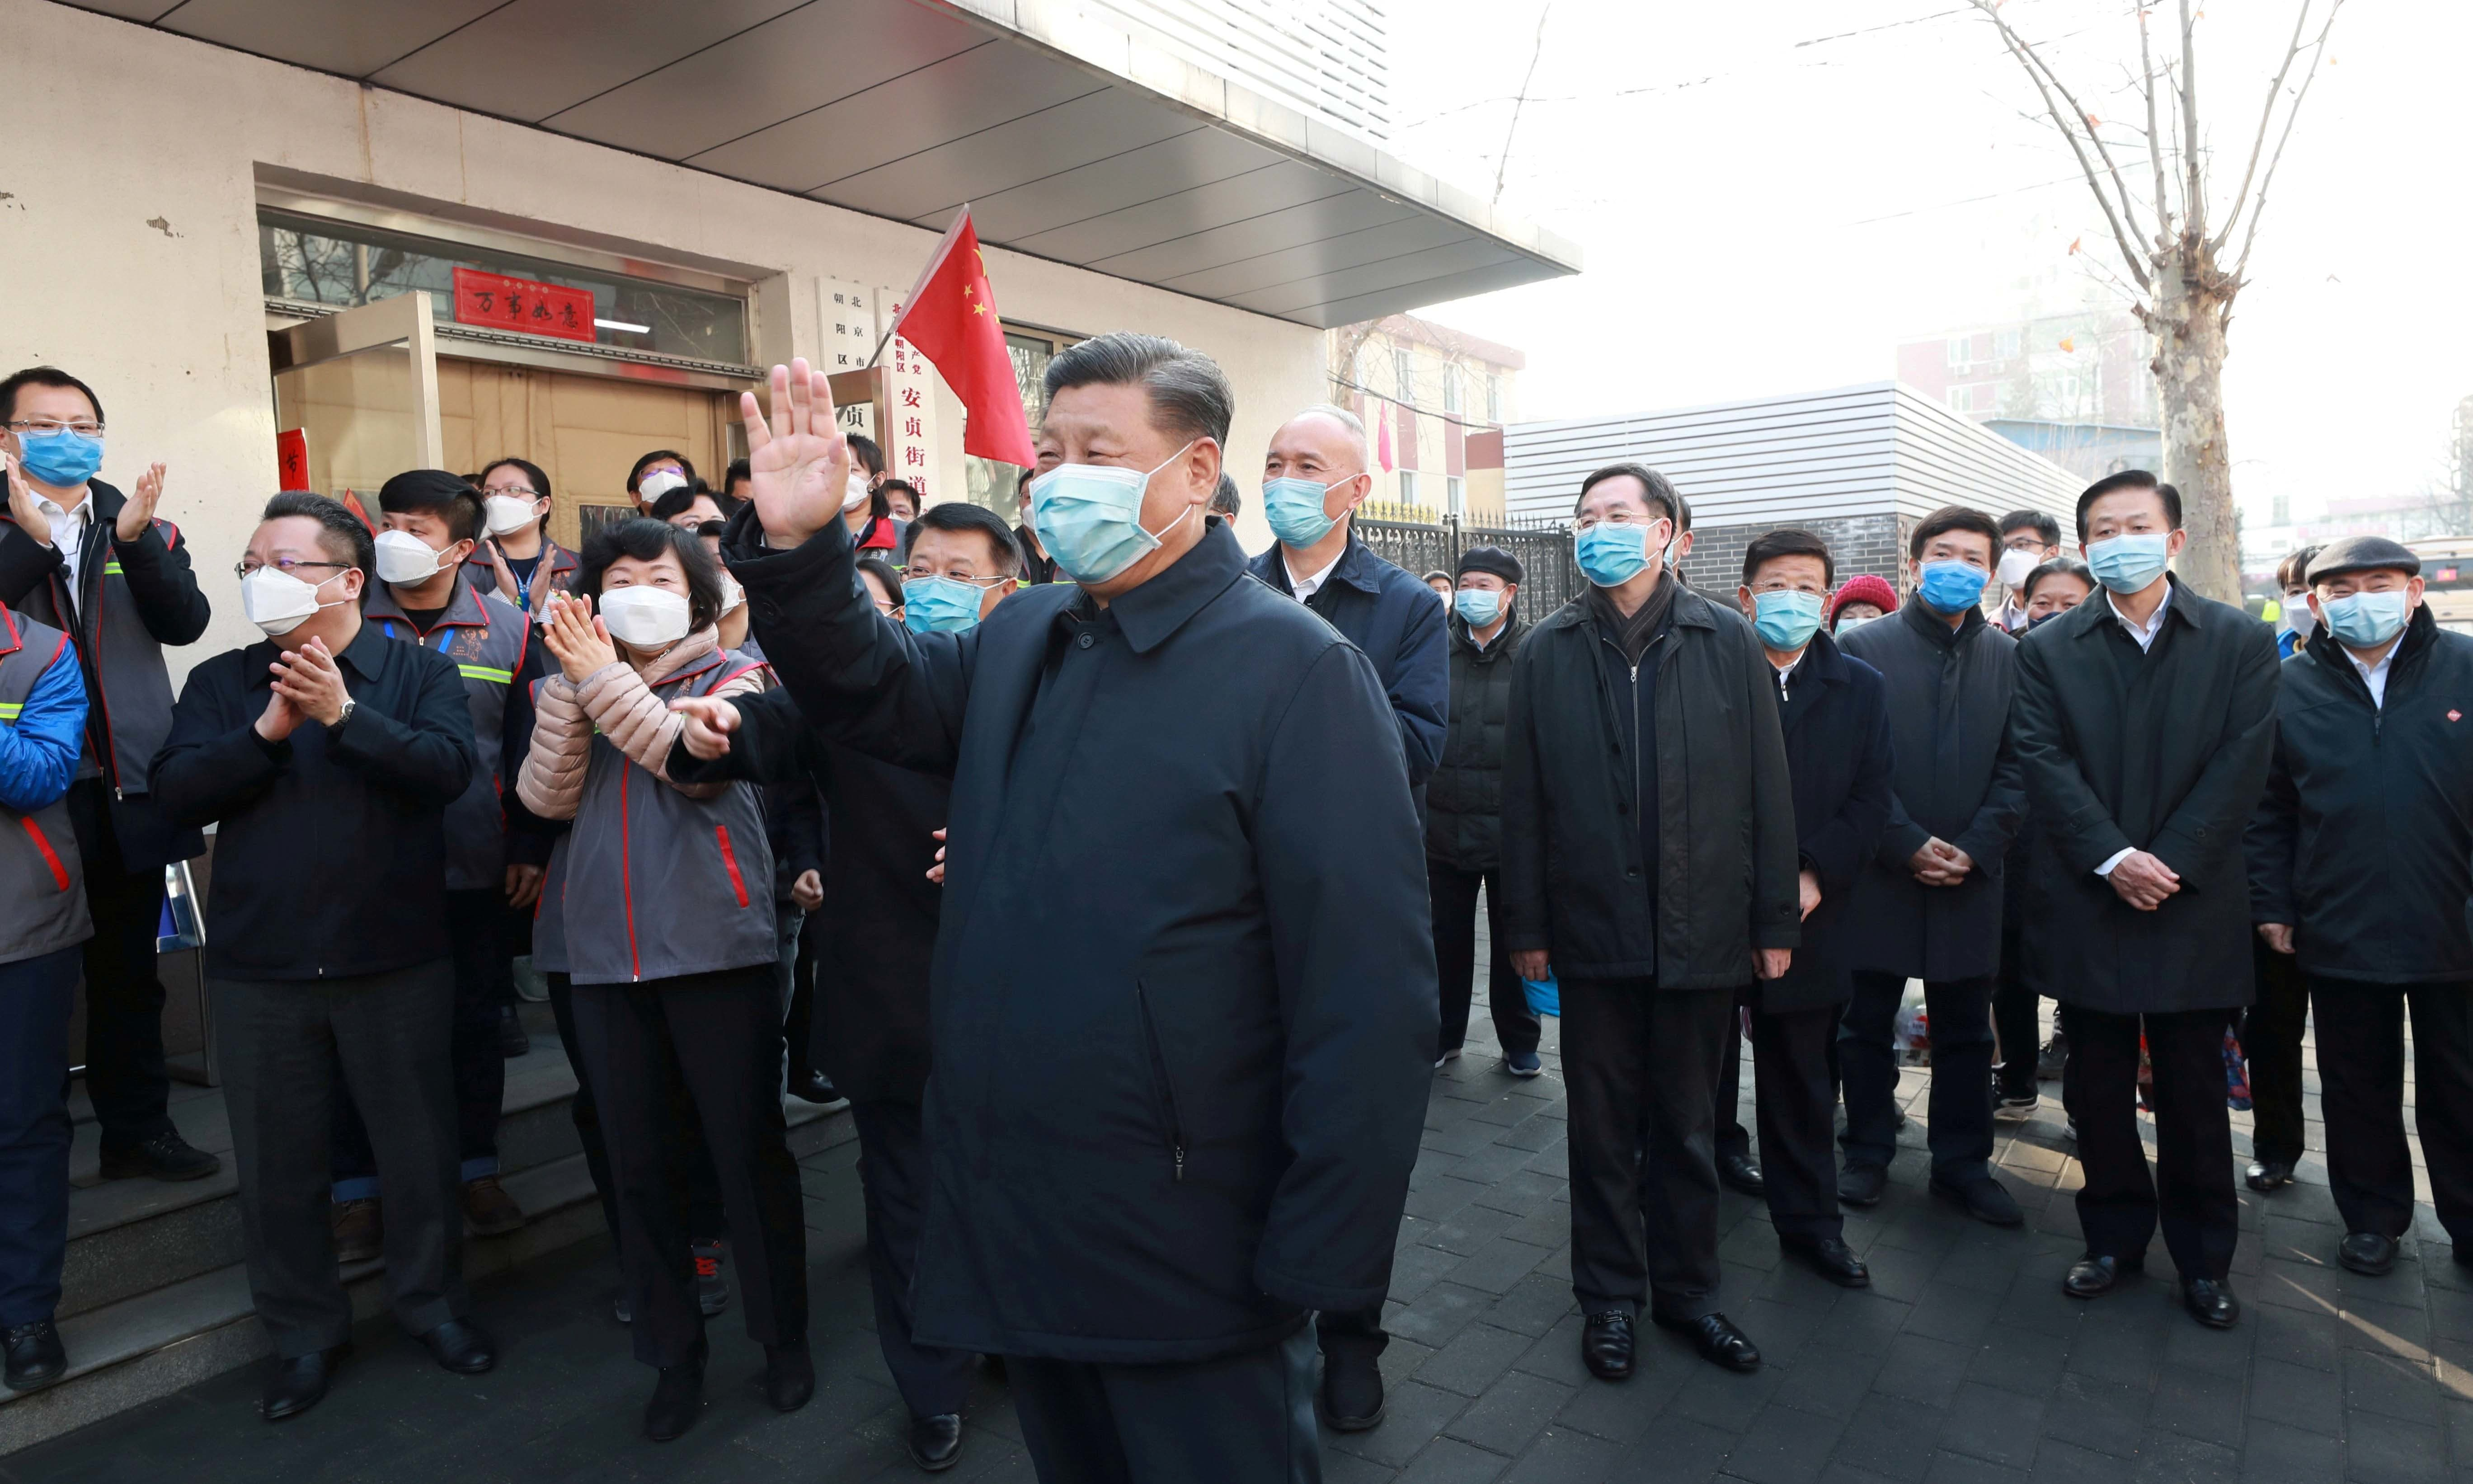 Chinese President Xi Jinping inspects the novel coronavirus prevention and control work at Anhuali Community in Beijing, China, on February 10. — Xinhua via Reuters